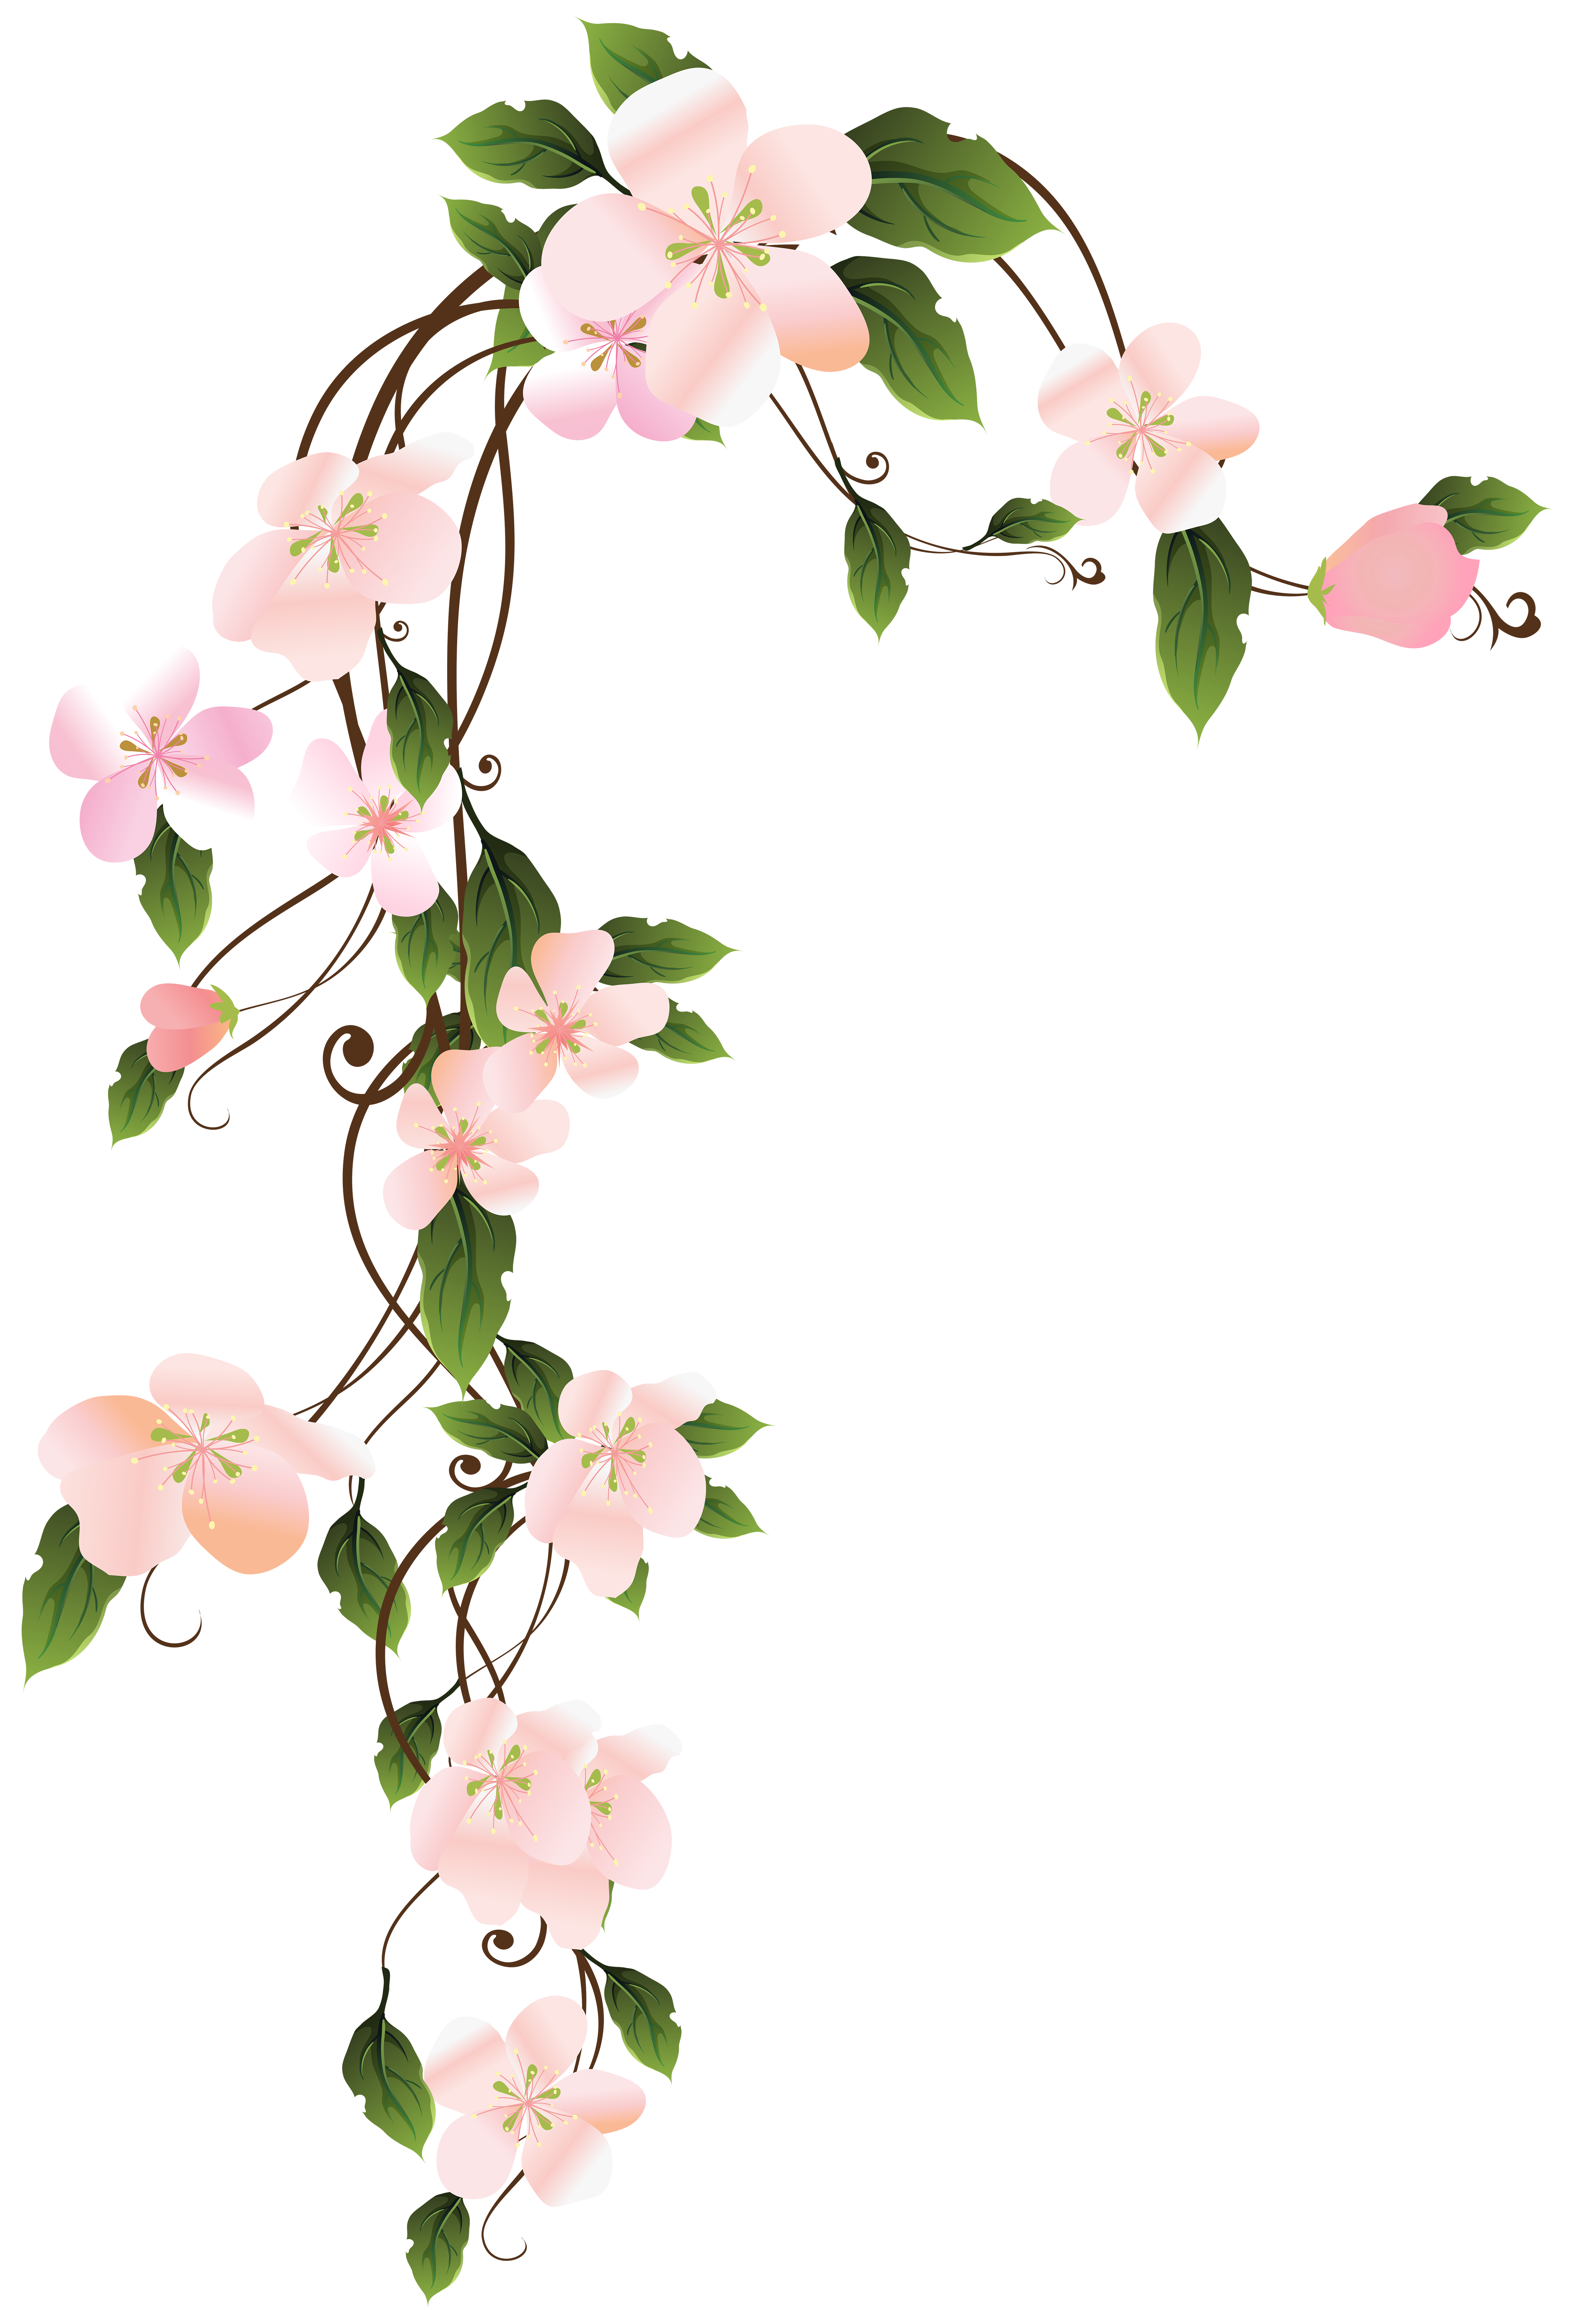 Hanging flower clipart royalty free download Hanging Floraw Decoration PNG Clip Art Image   Gallery Yopriceville ... royalty free download